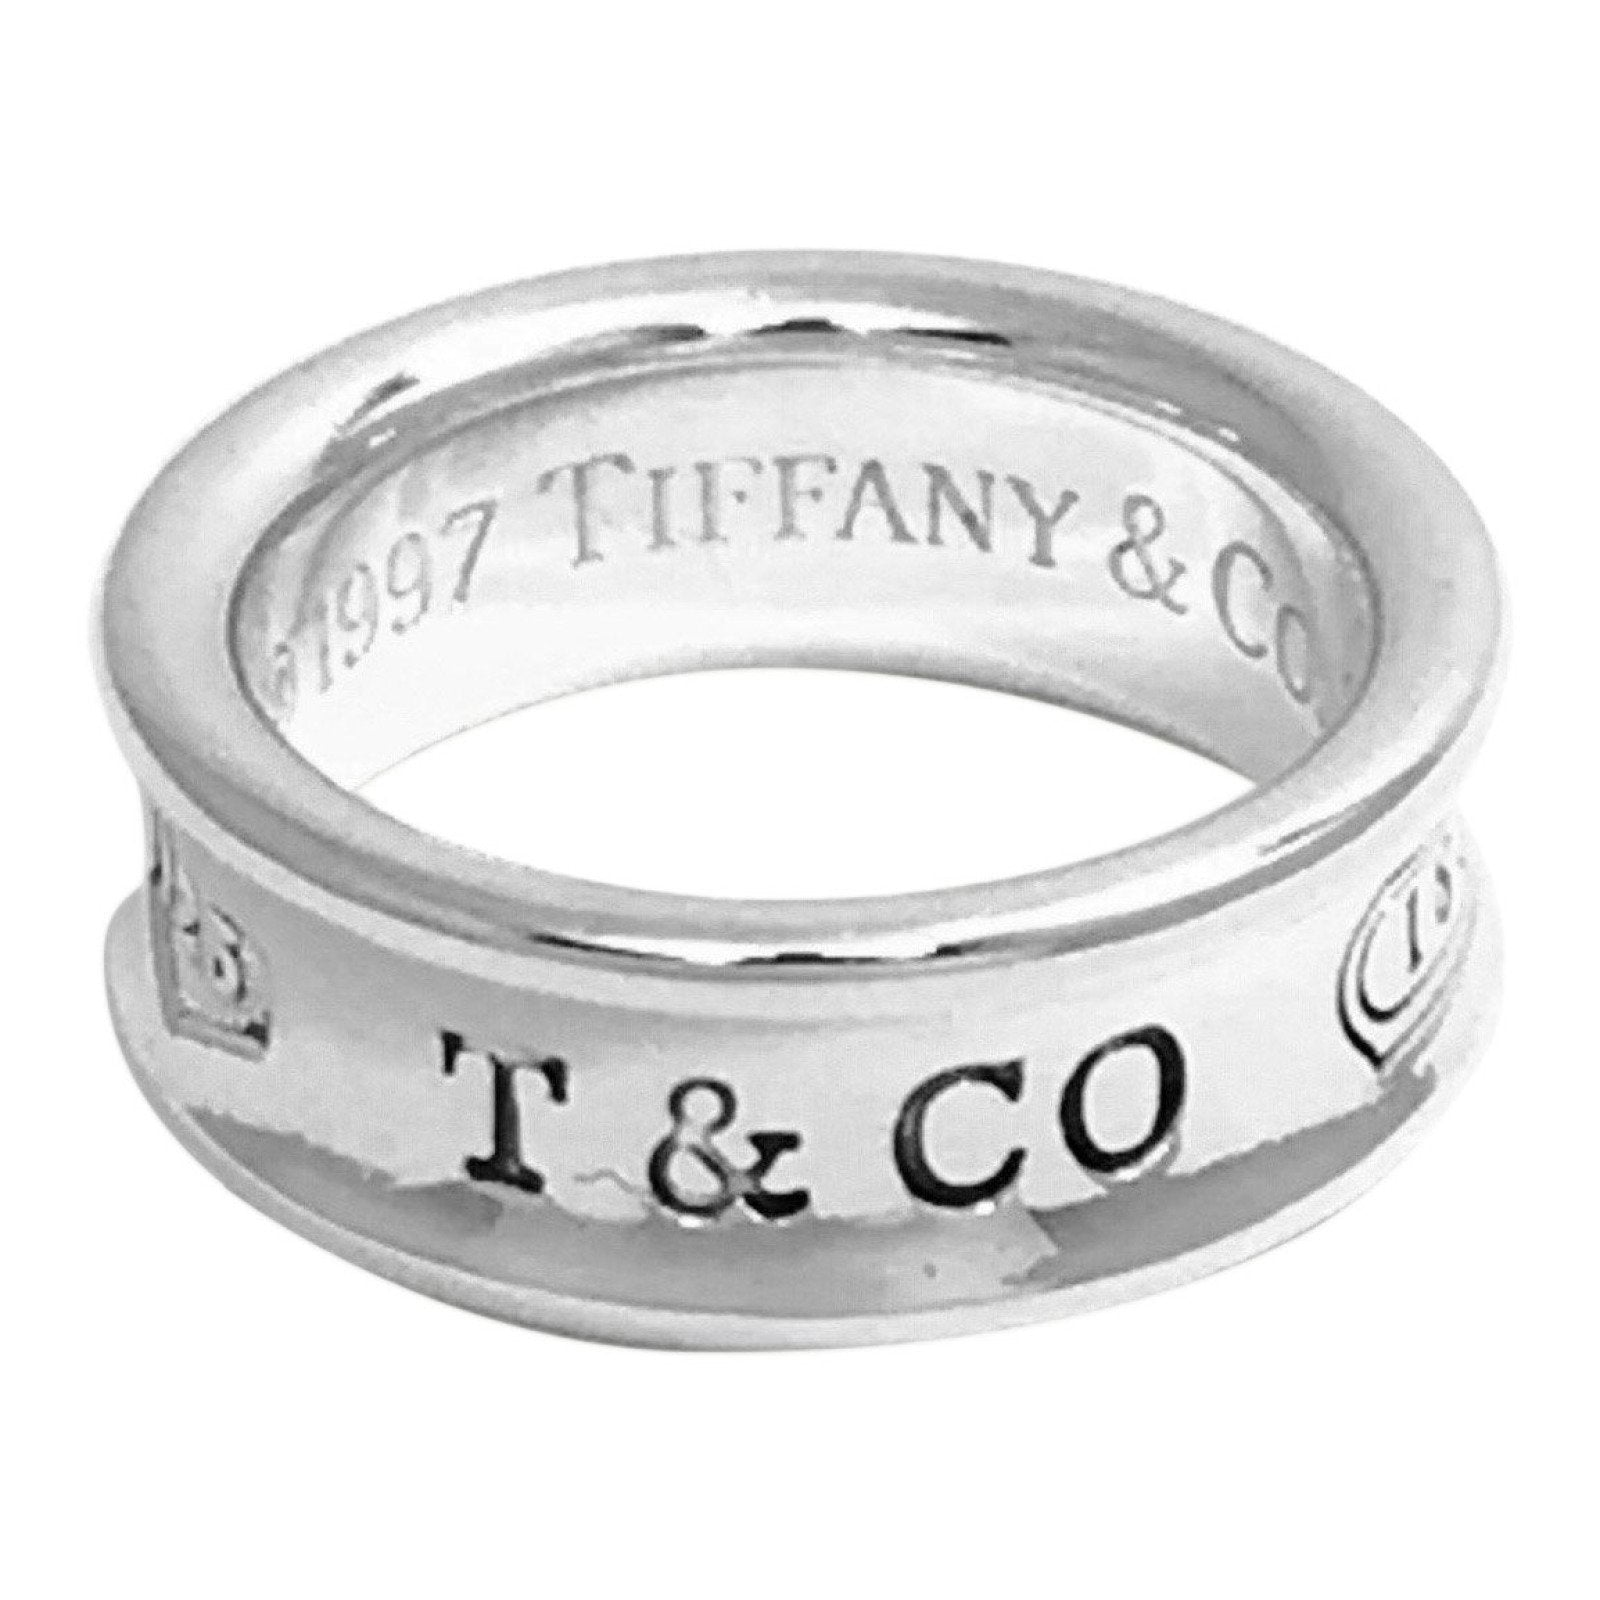 f369846e6 Tiffany & Co. 1837 Ring in Sterling Silver– Oliver Jewellery